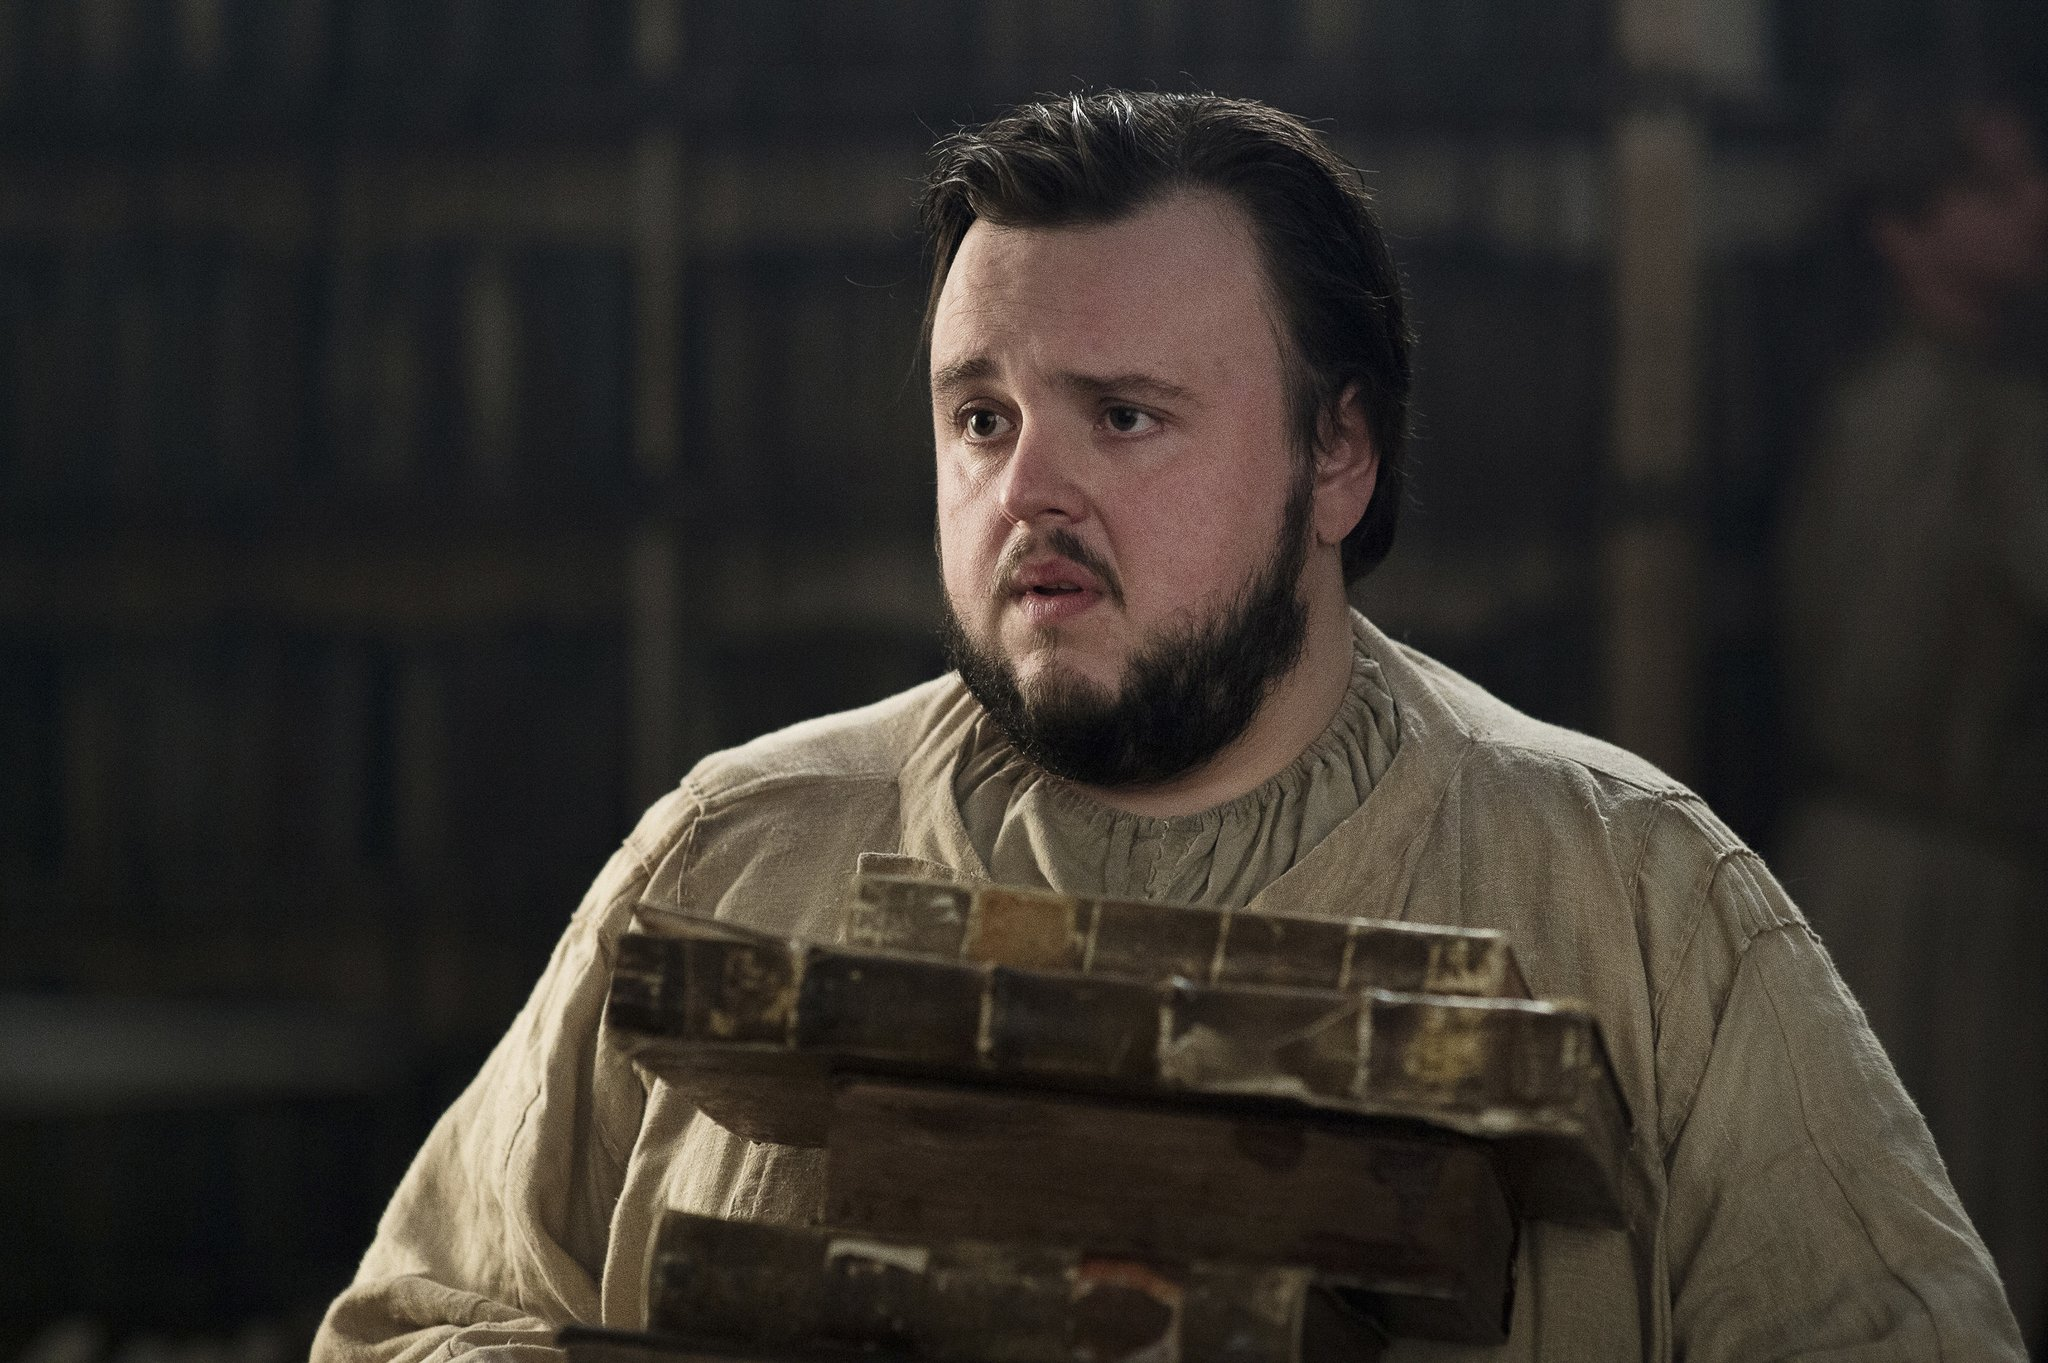 Samwell Tarly knows it's not just brawn that wins battles.